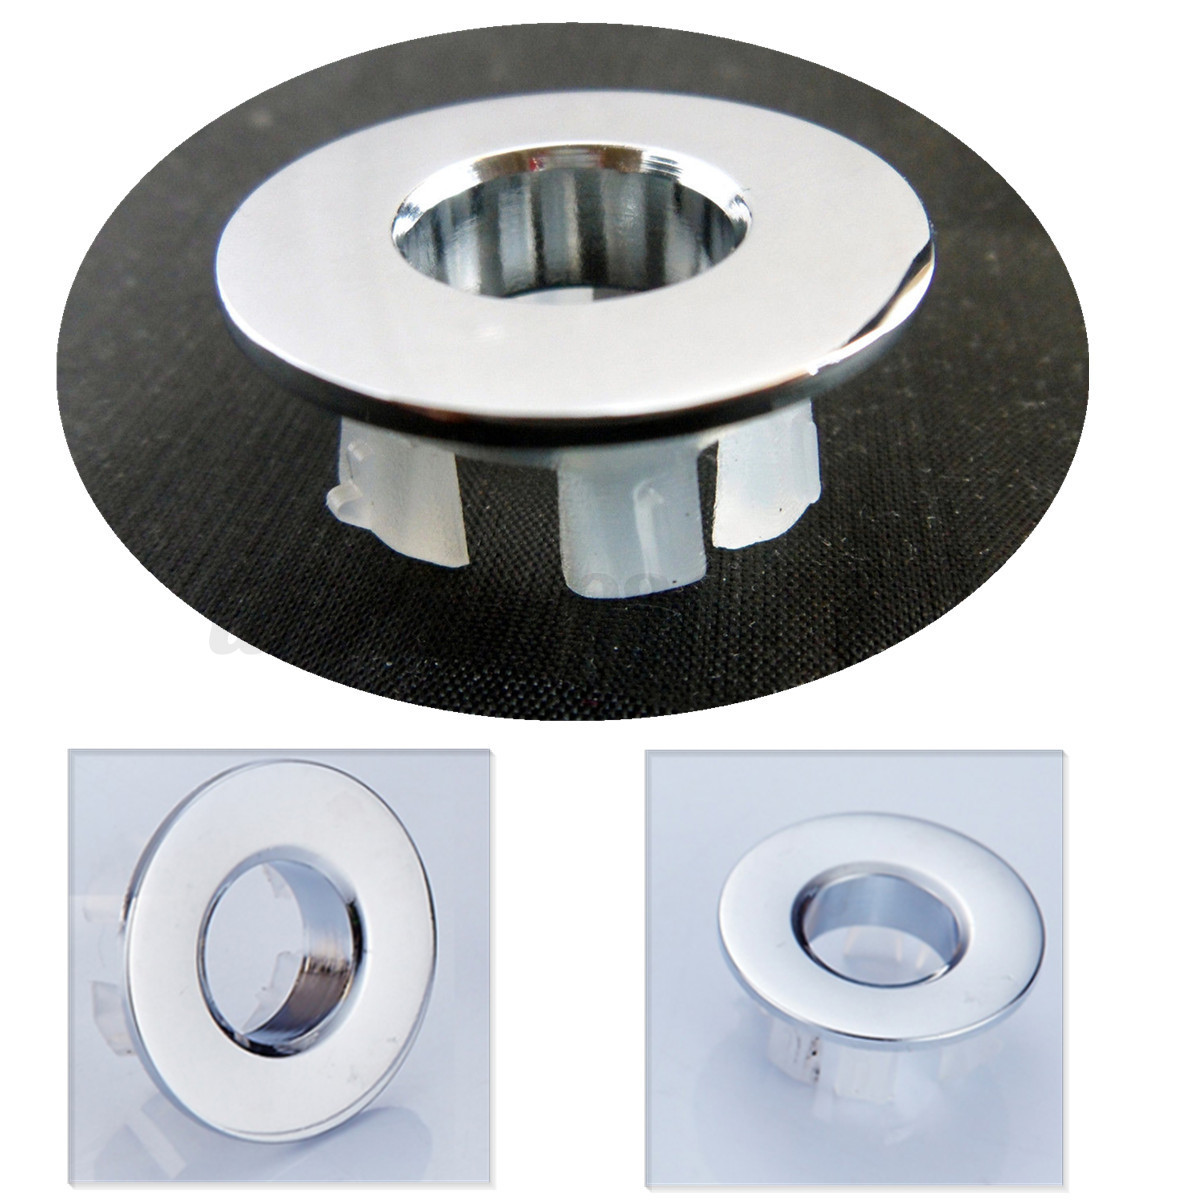 2pcs Bathroom Sink Overflow Trim Ring Chrome Hole Cover